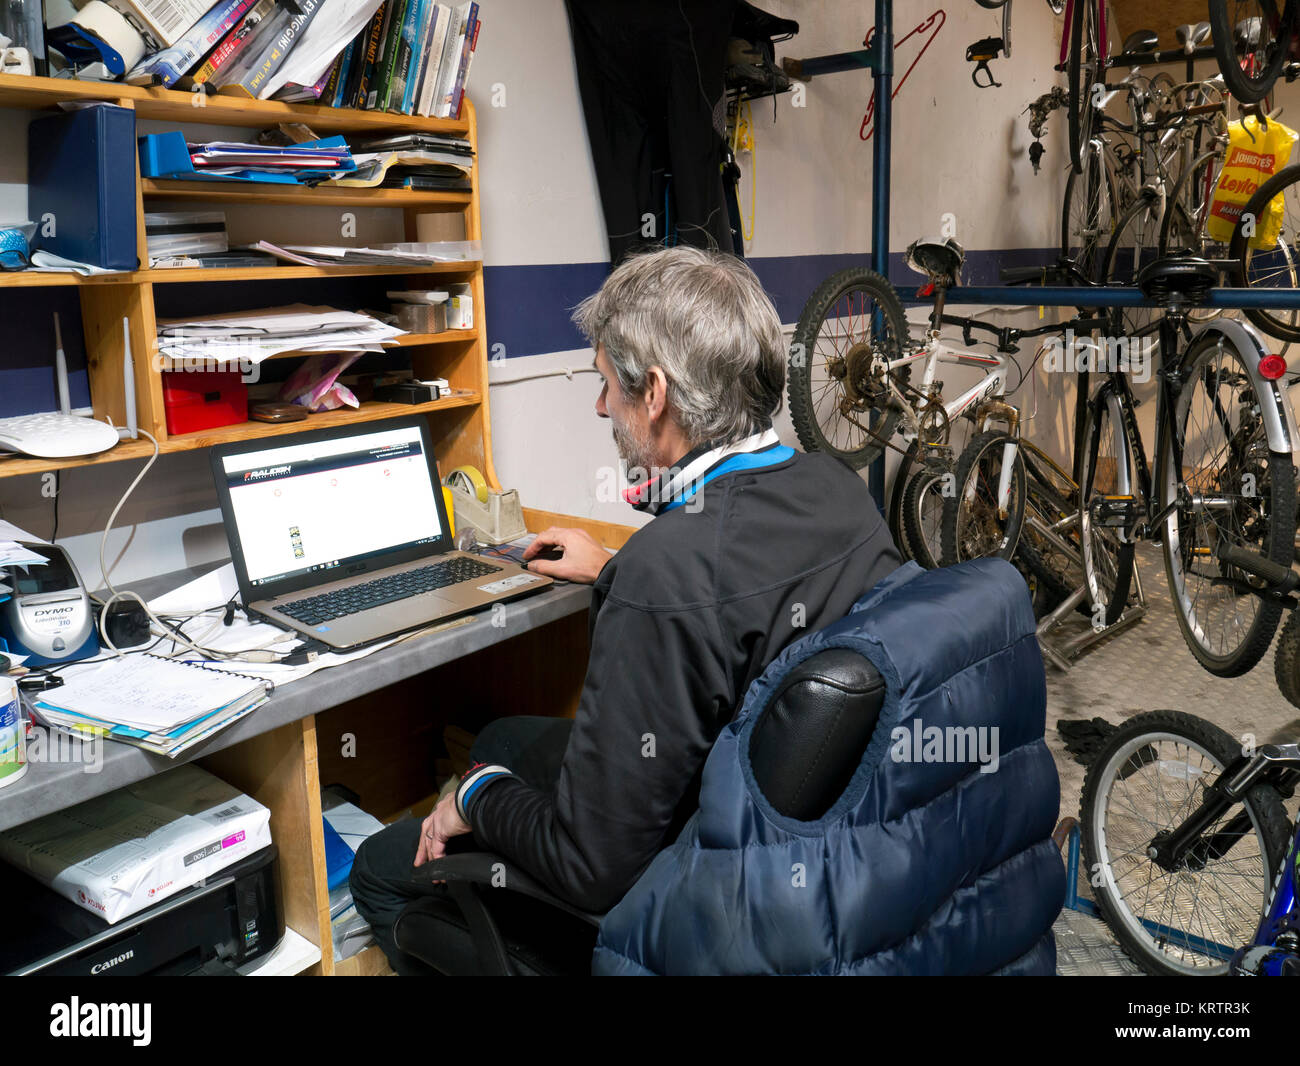 Self employed man working on a laptop - Stock Image